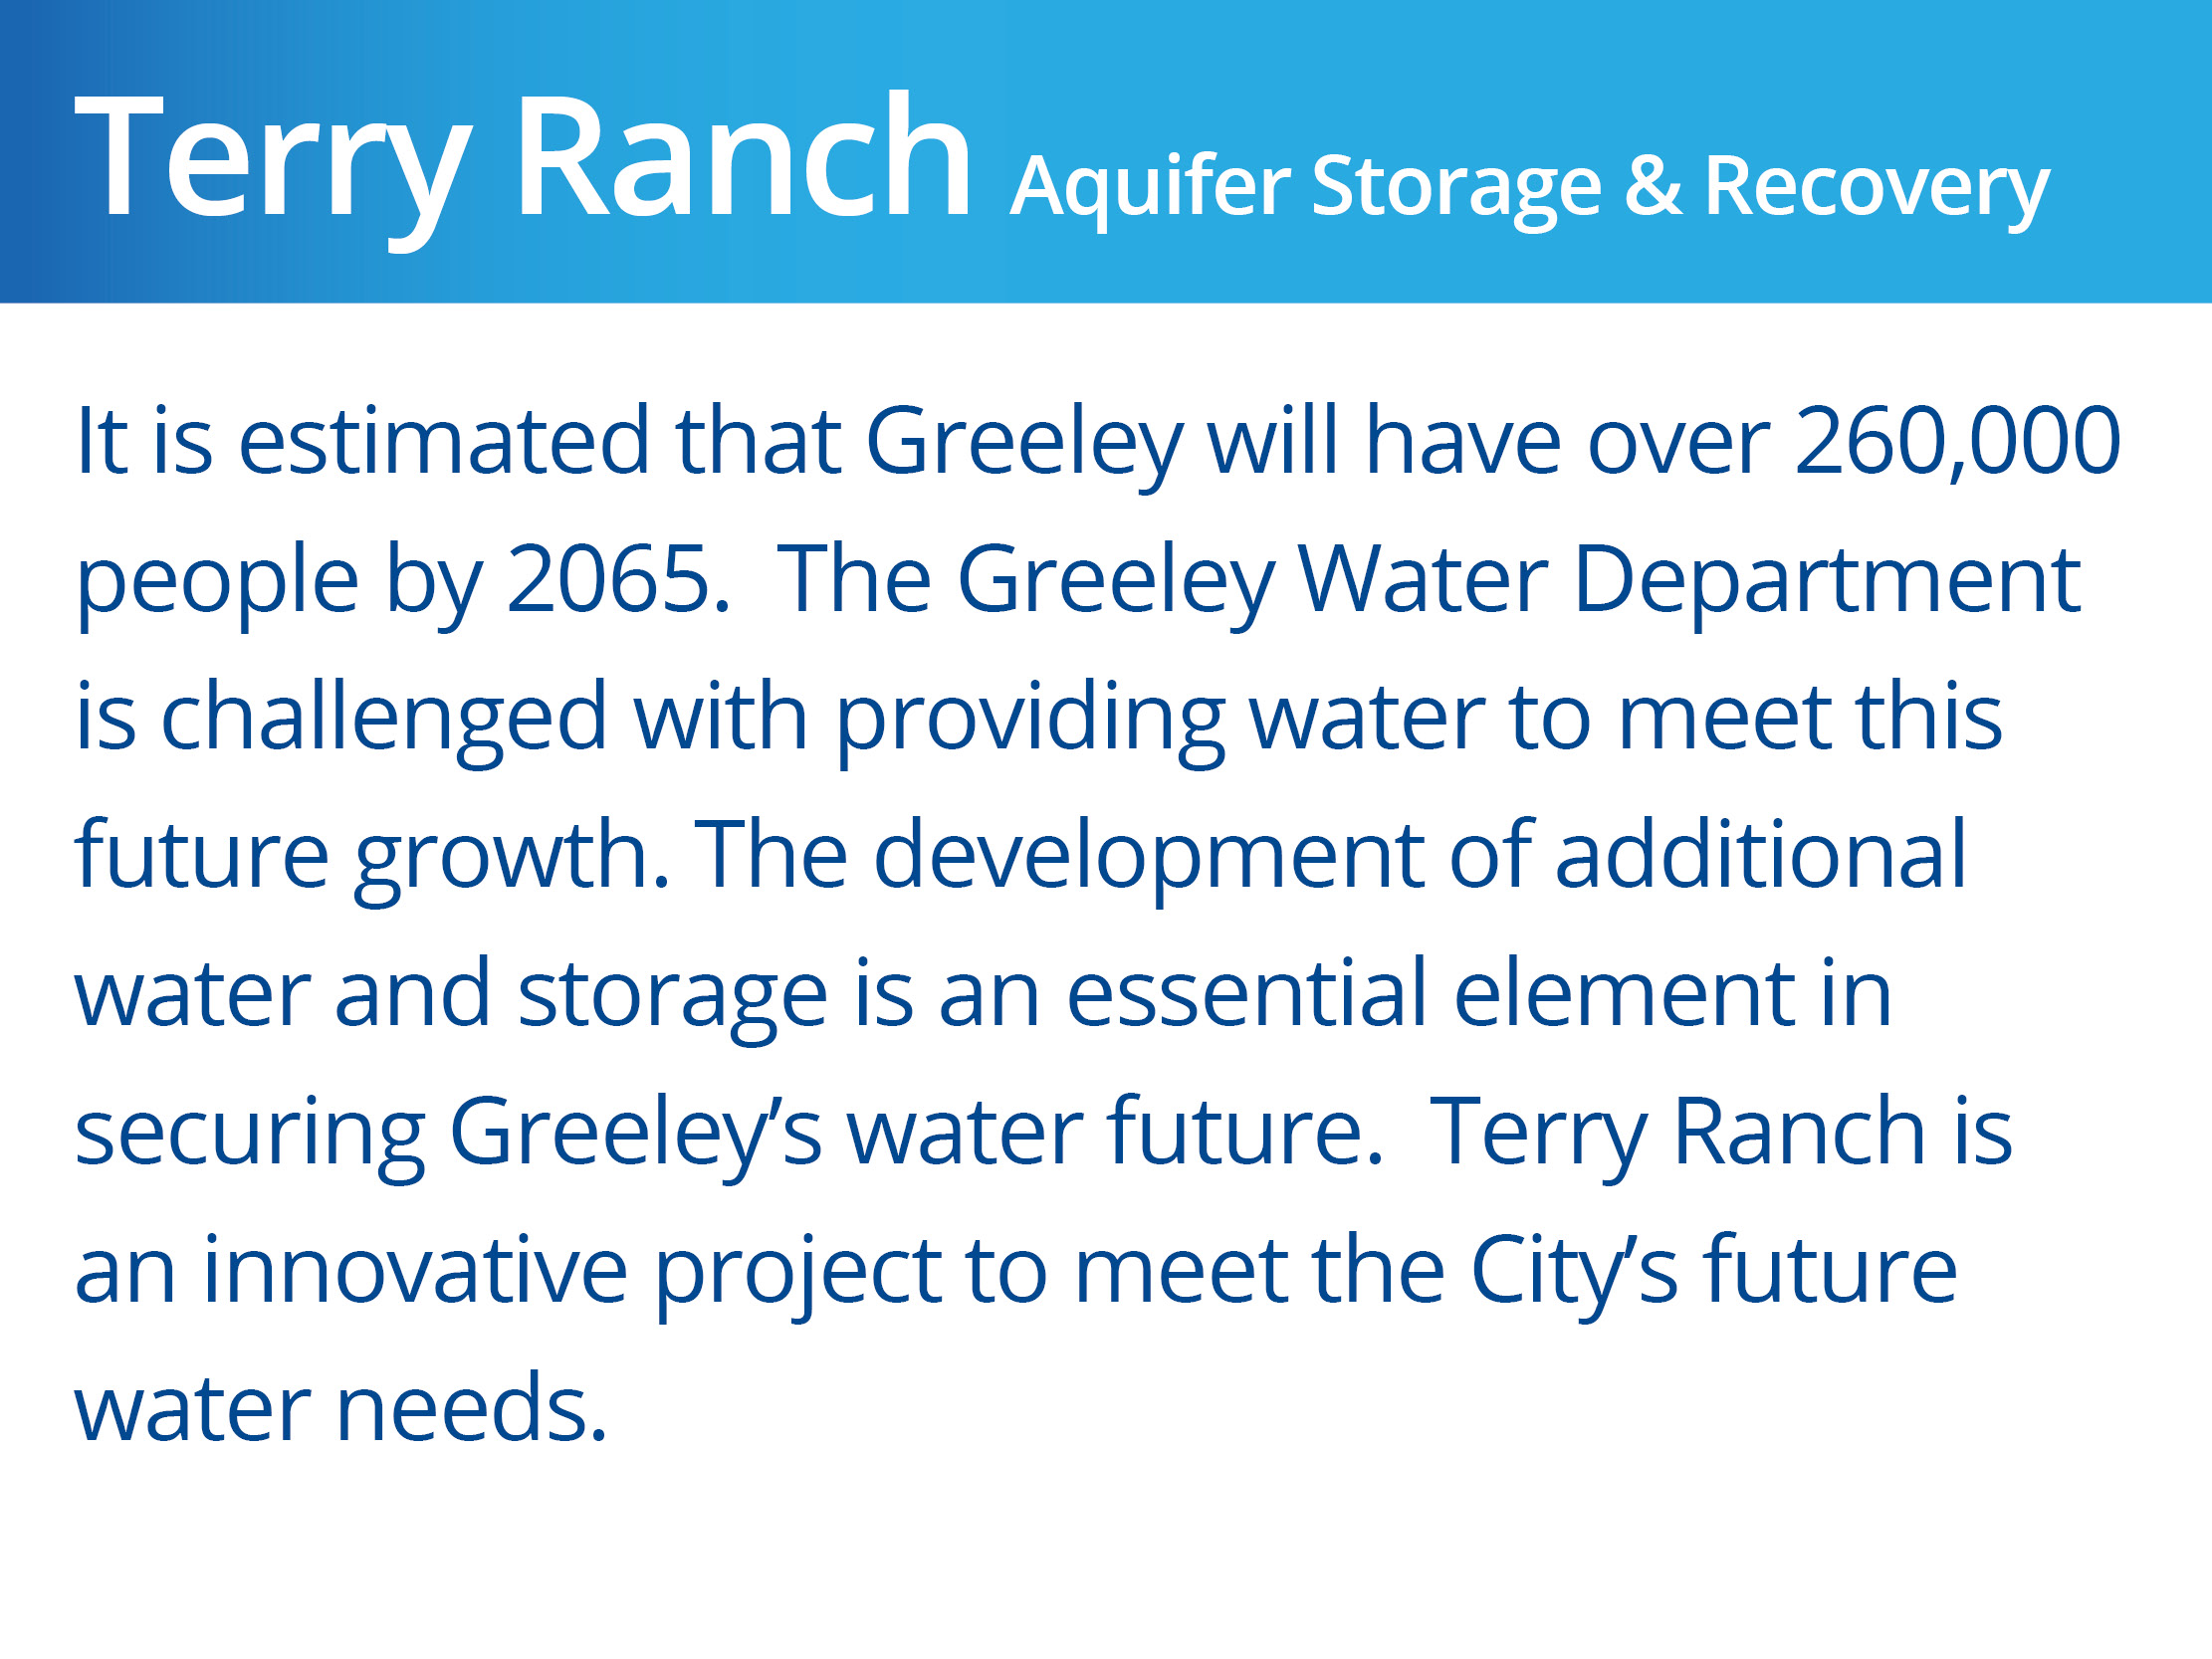 Aquifer Storage & Recovery_Terry Ranch